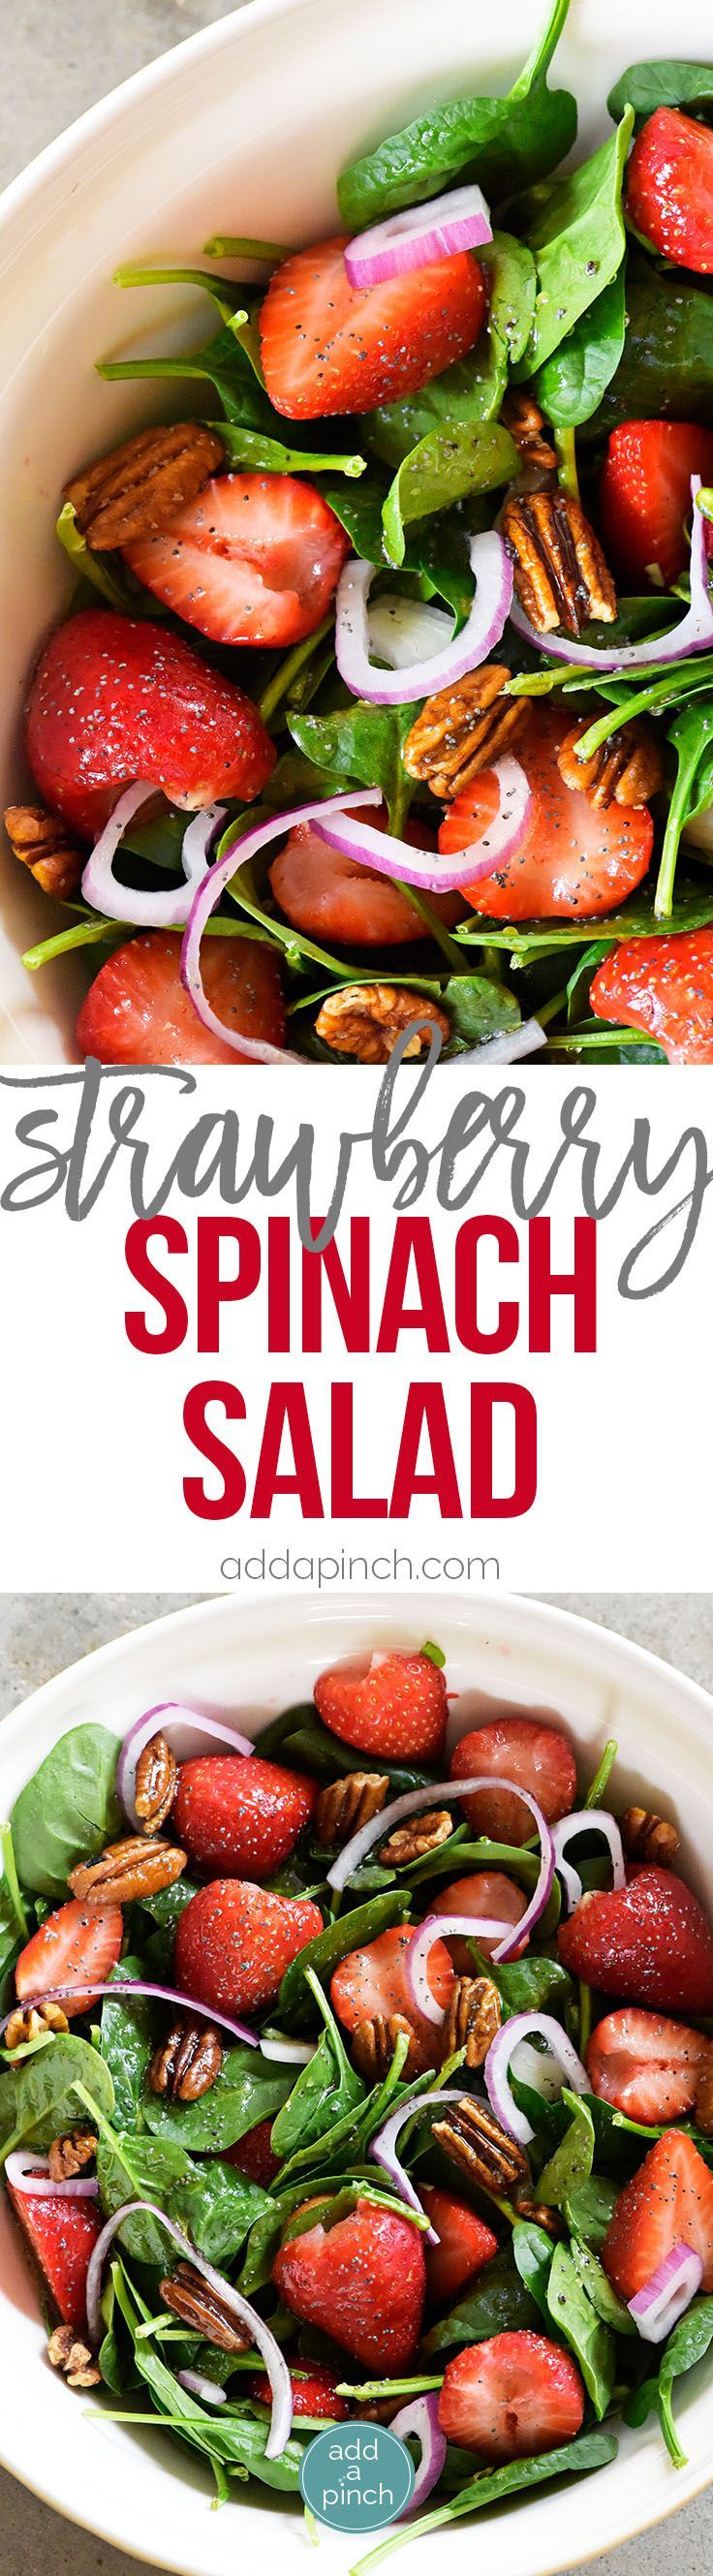 Strawberry Spinach Salad Recipe Strawberry Spinach Salad topped with an easy Poppy Seed Dressing makes